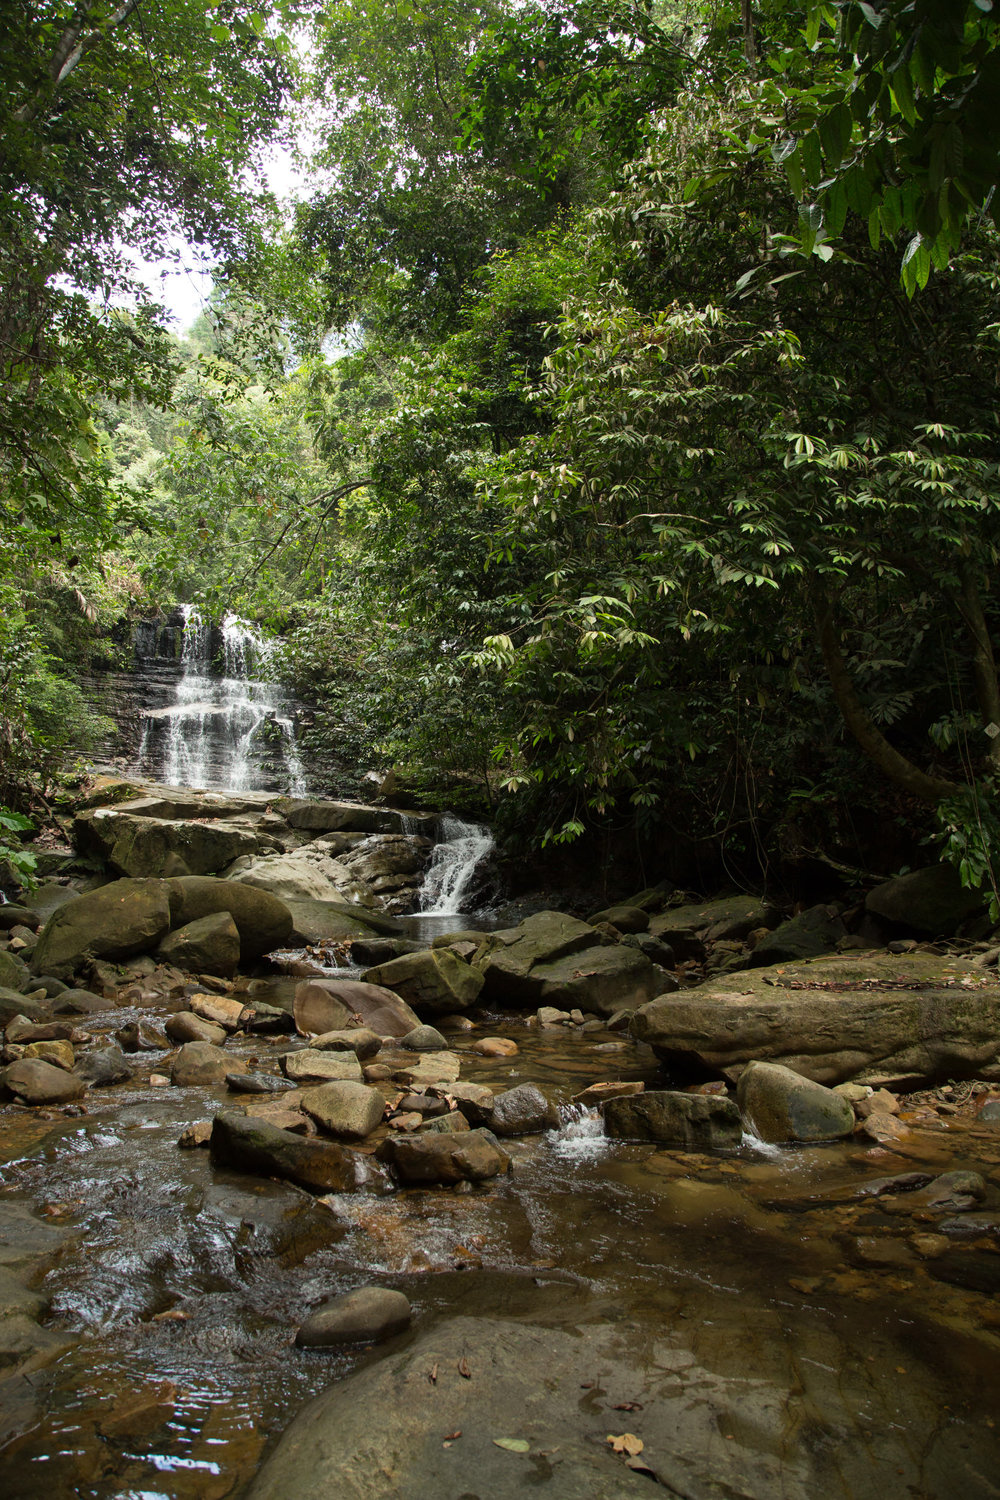 All forrests need water, and borneo is no exception, with lots of rivers and waterfalls deep in the jungle